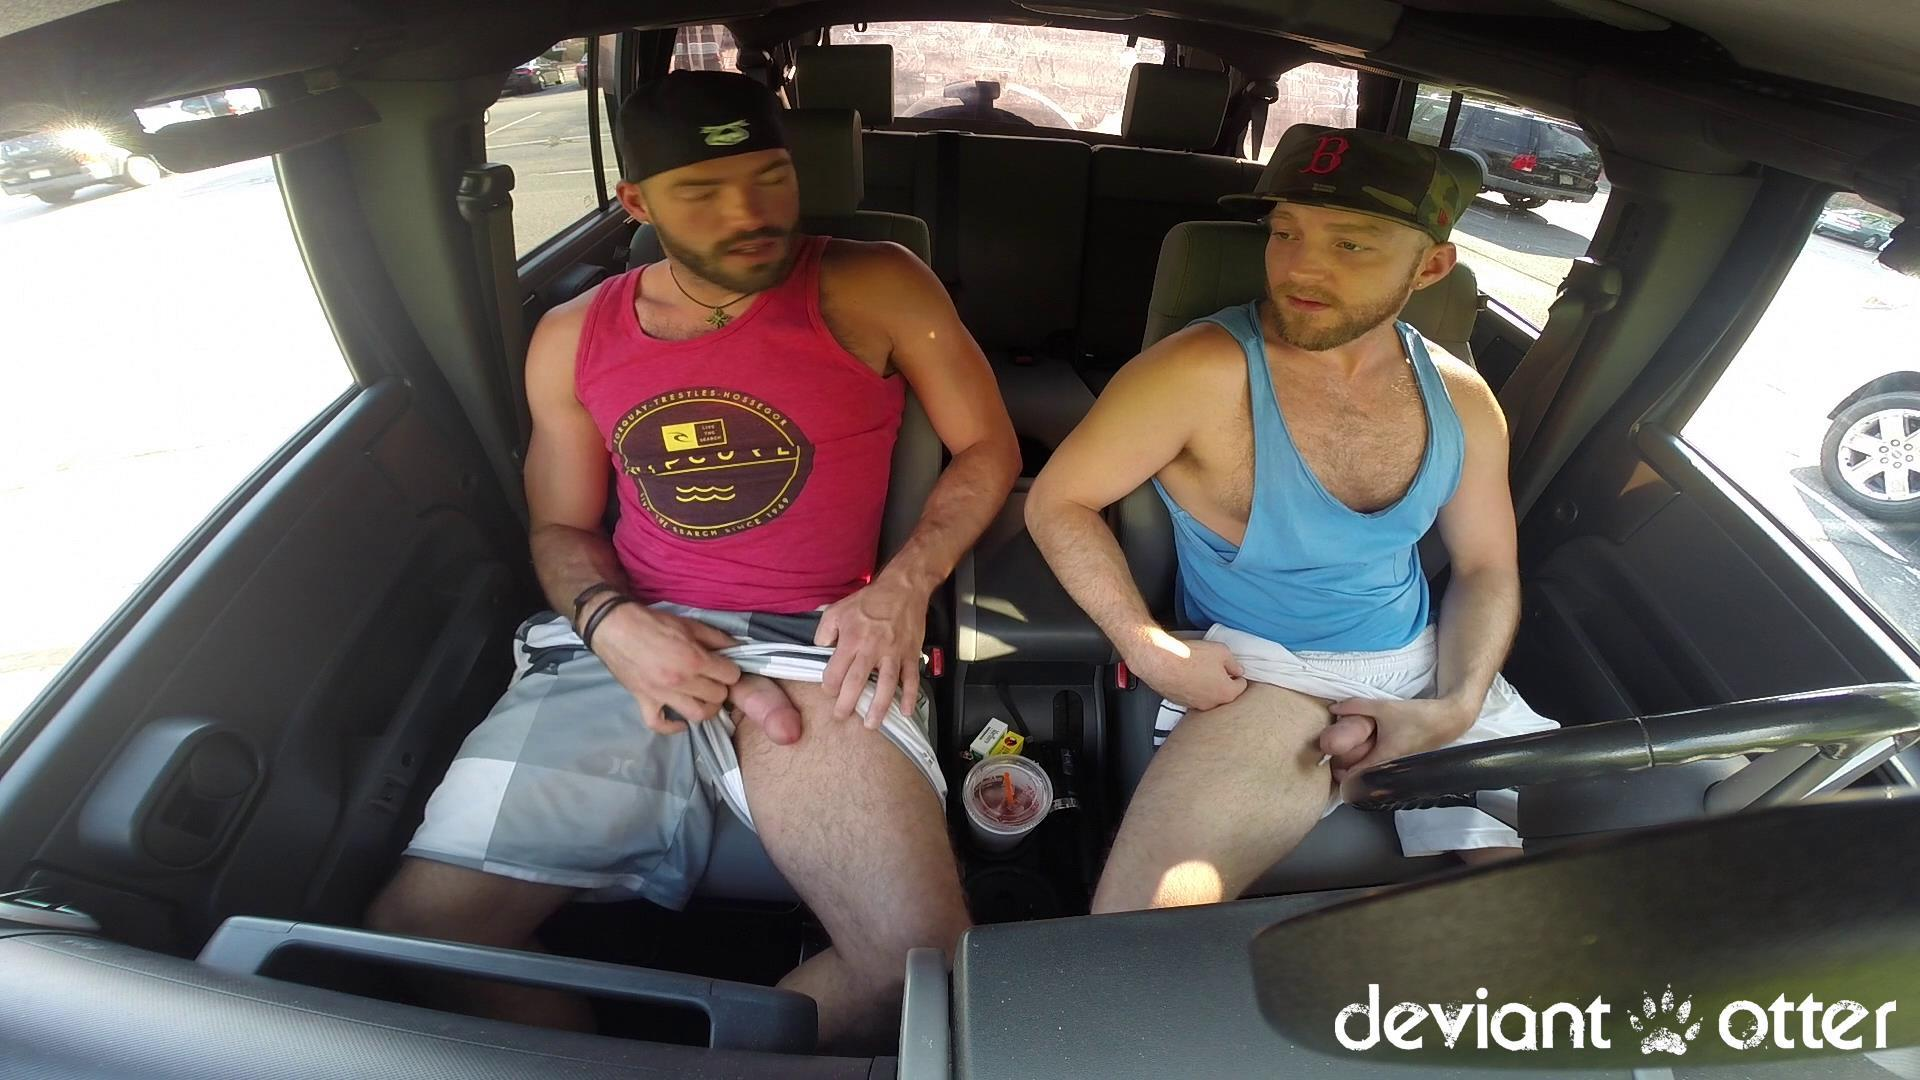 Deviant-Otter-Xavier-Sucking-Cock-In-Public-Hairy-Guys-Amateur-Gay-Porn-02 Masculine Hairy Guys Sucking Each Other's Cock In A Parking Lot